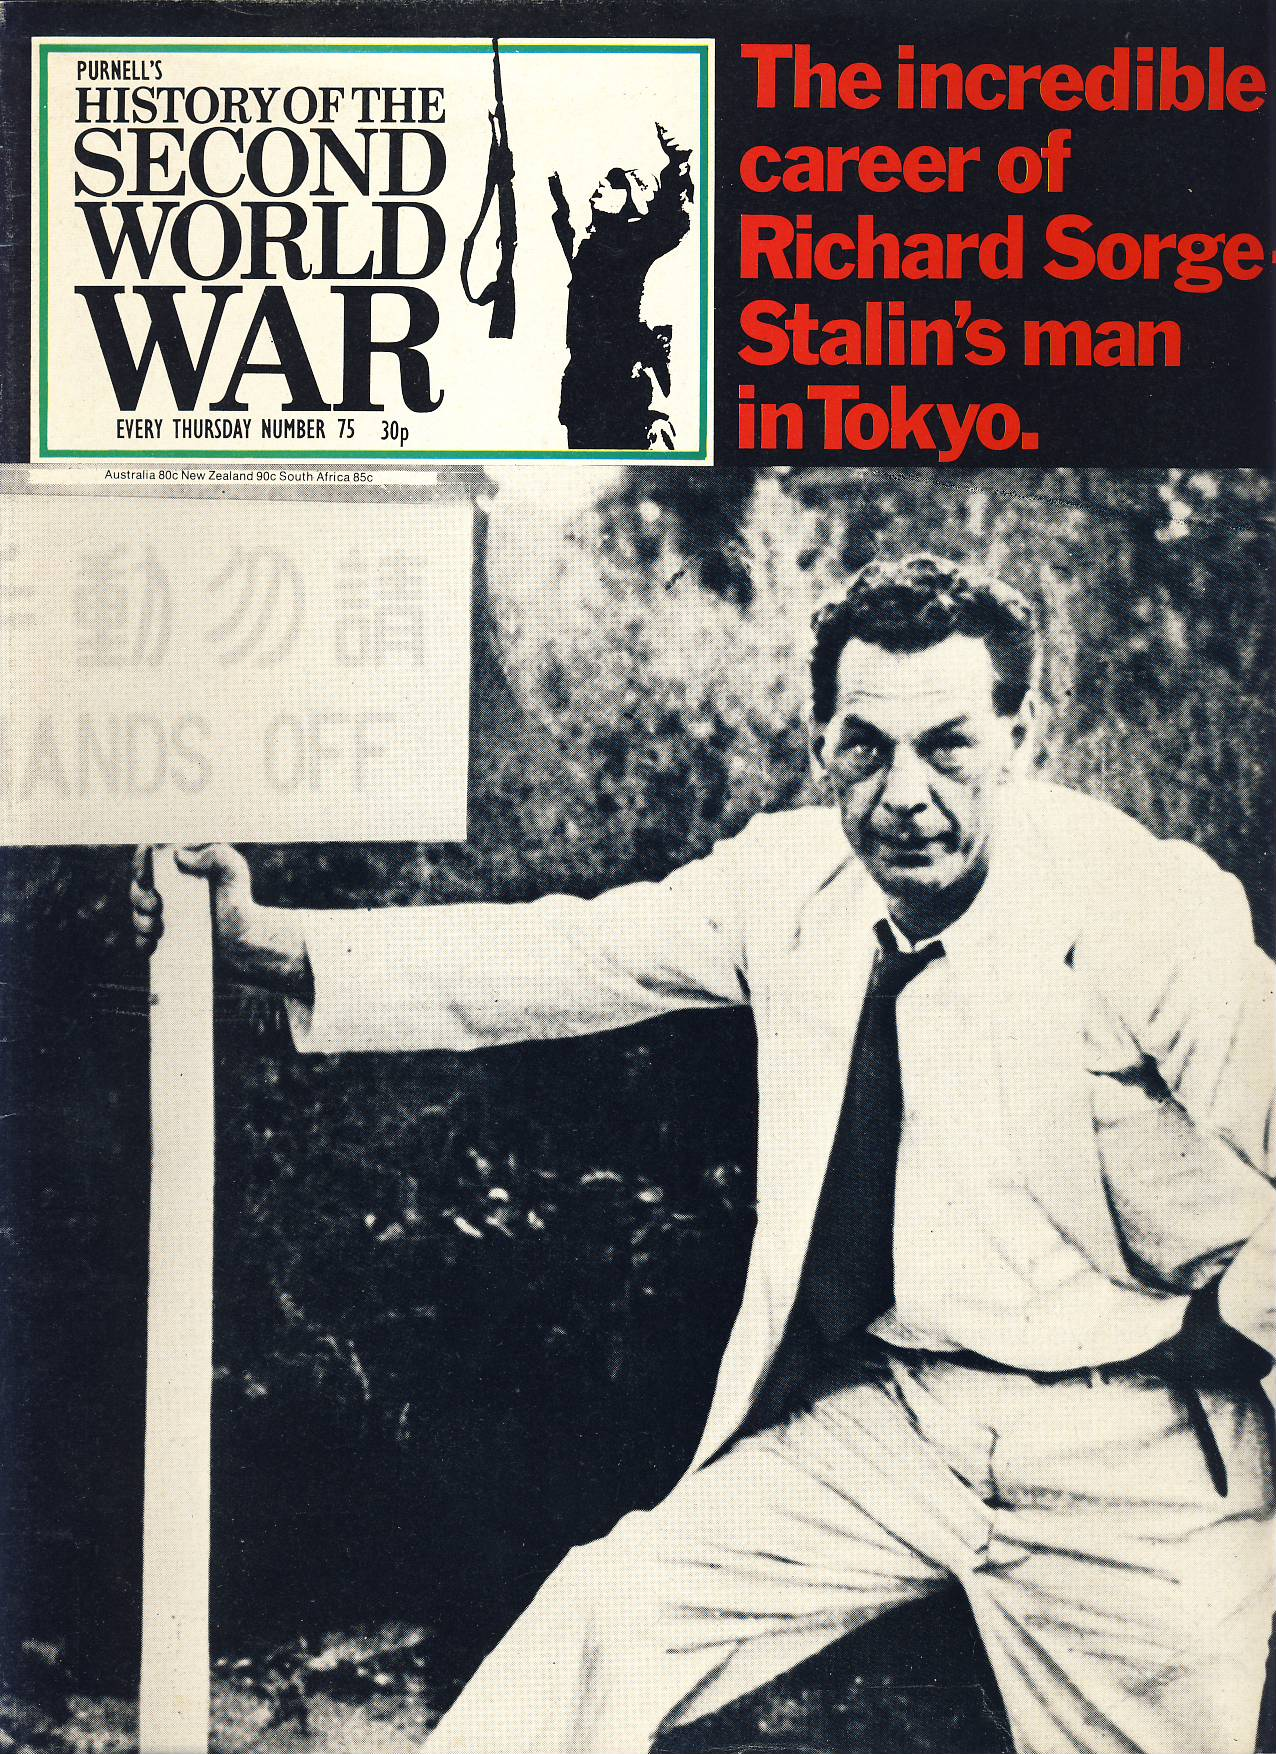 History of the Second World War Magazine #75 Richard Sorge Stalin's man in Tokyo A vintage Purnell's weekly magazine in well read condition. Please see larger photo and full description for details.